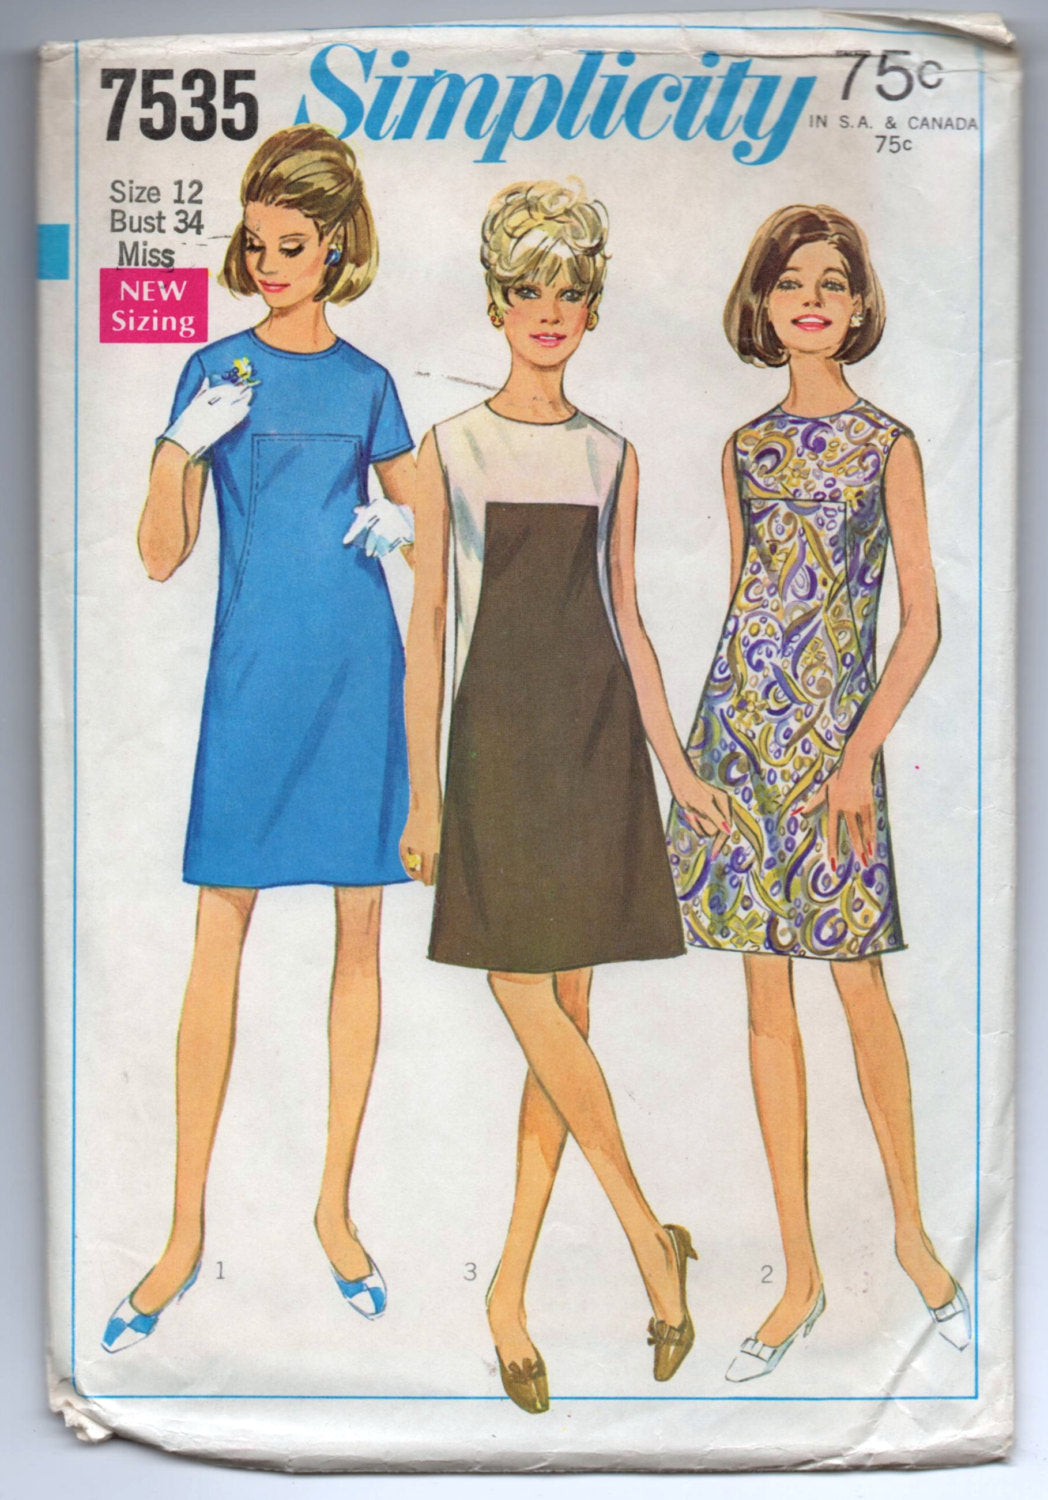 1960's Simplicity One-Piece Mod Contrast Dress Pattern - Bust 34